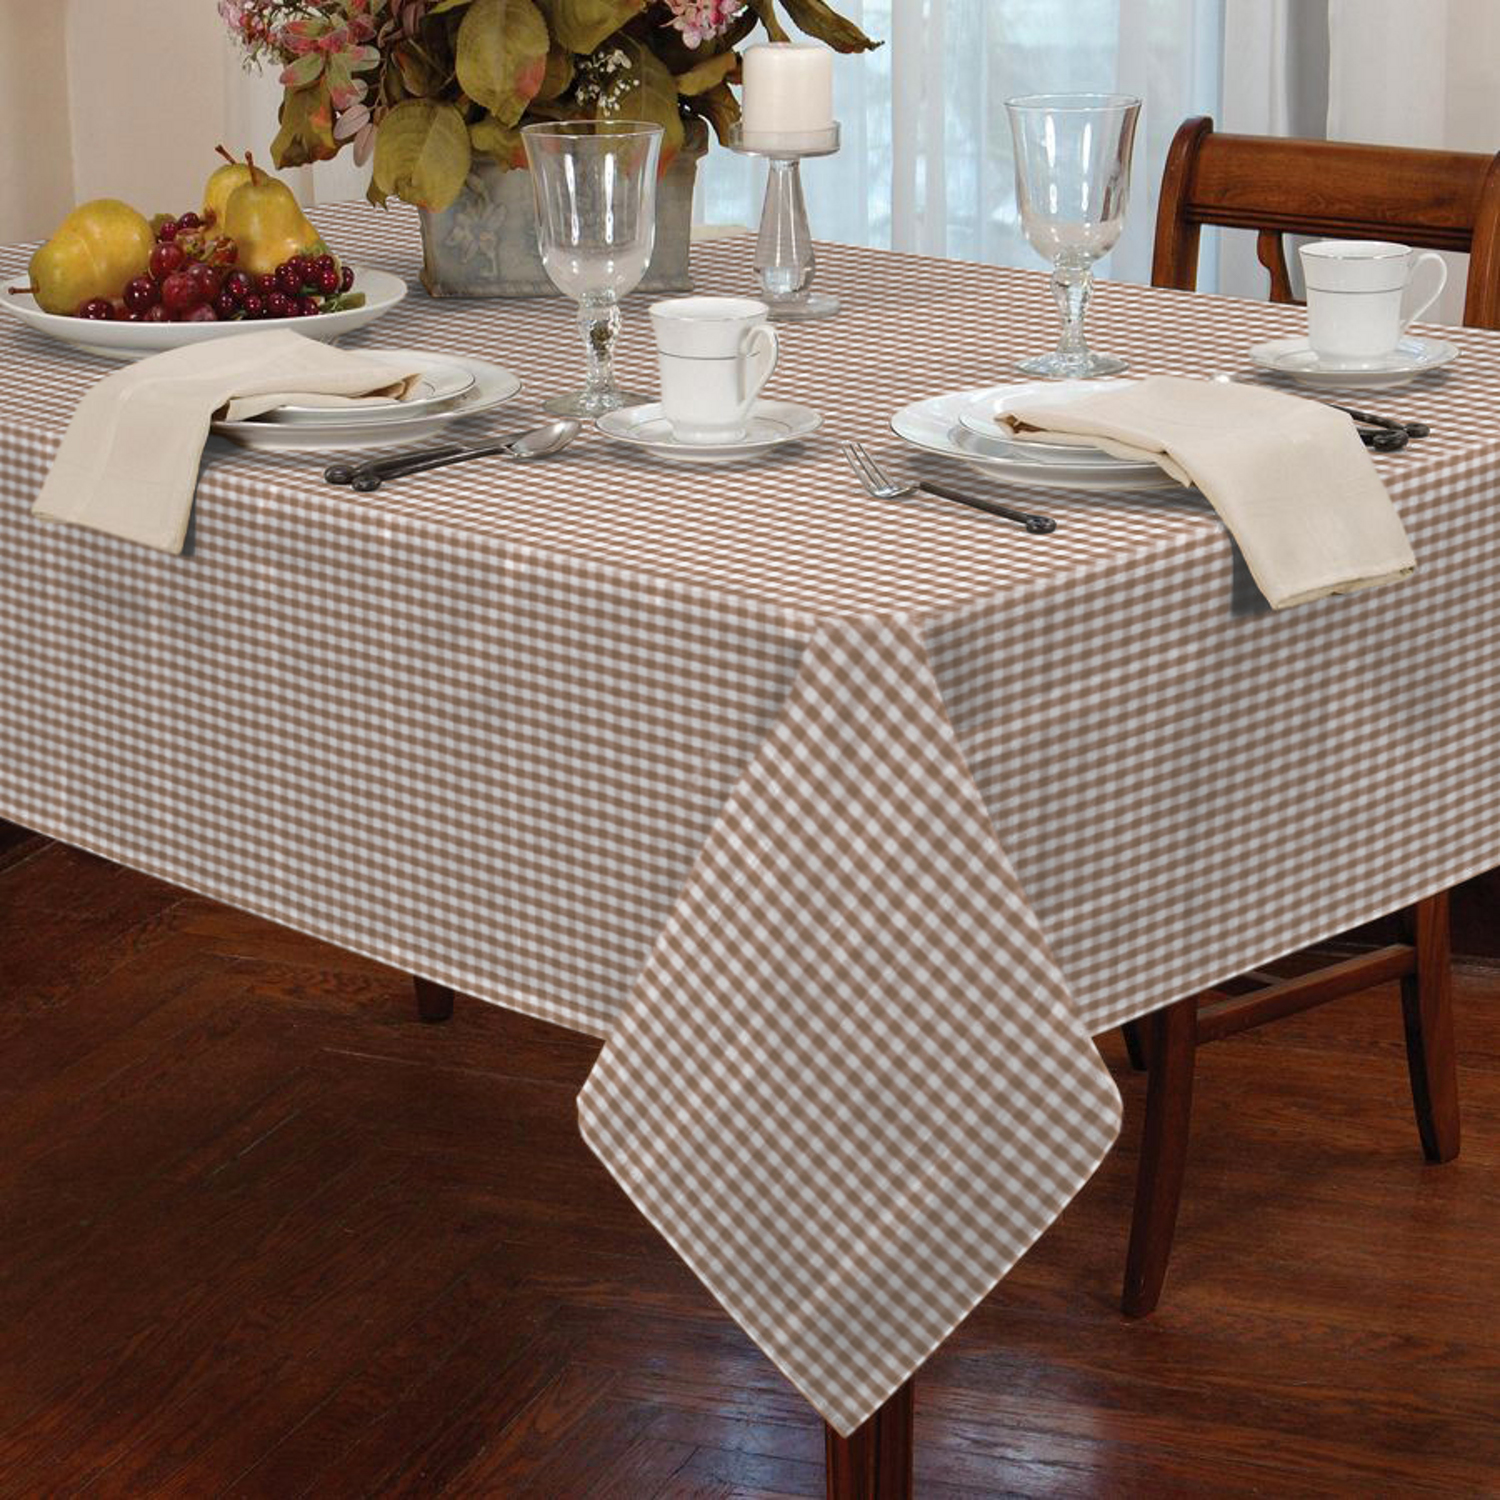 Tablecloth For Dining Room Table Garden Picnic Gingham Check Tablecloth Dining Room Table Linen